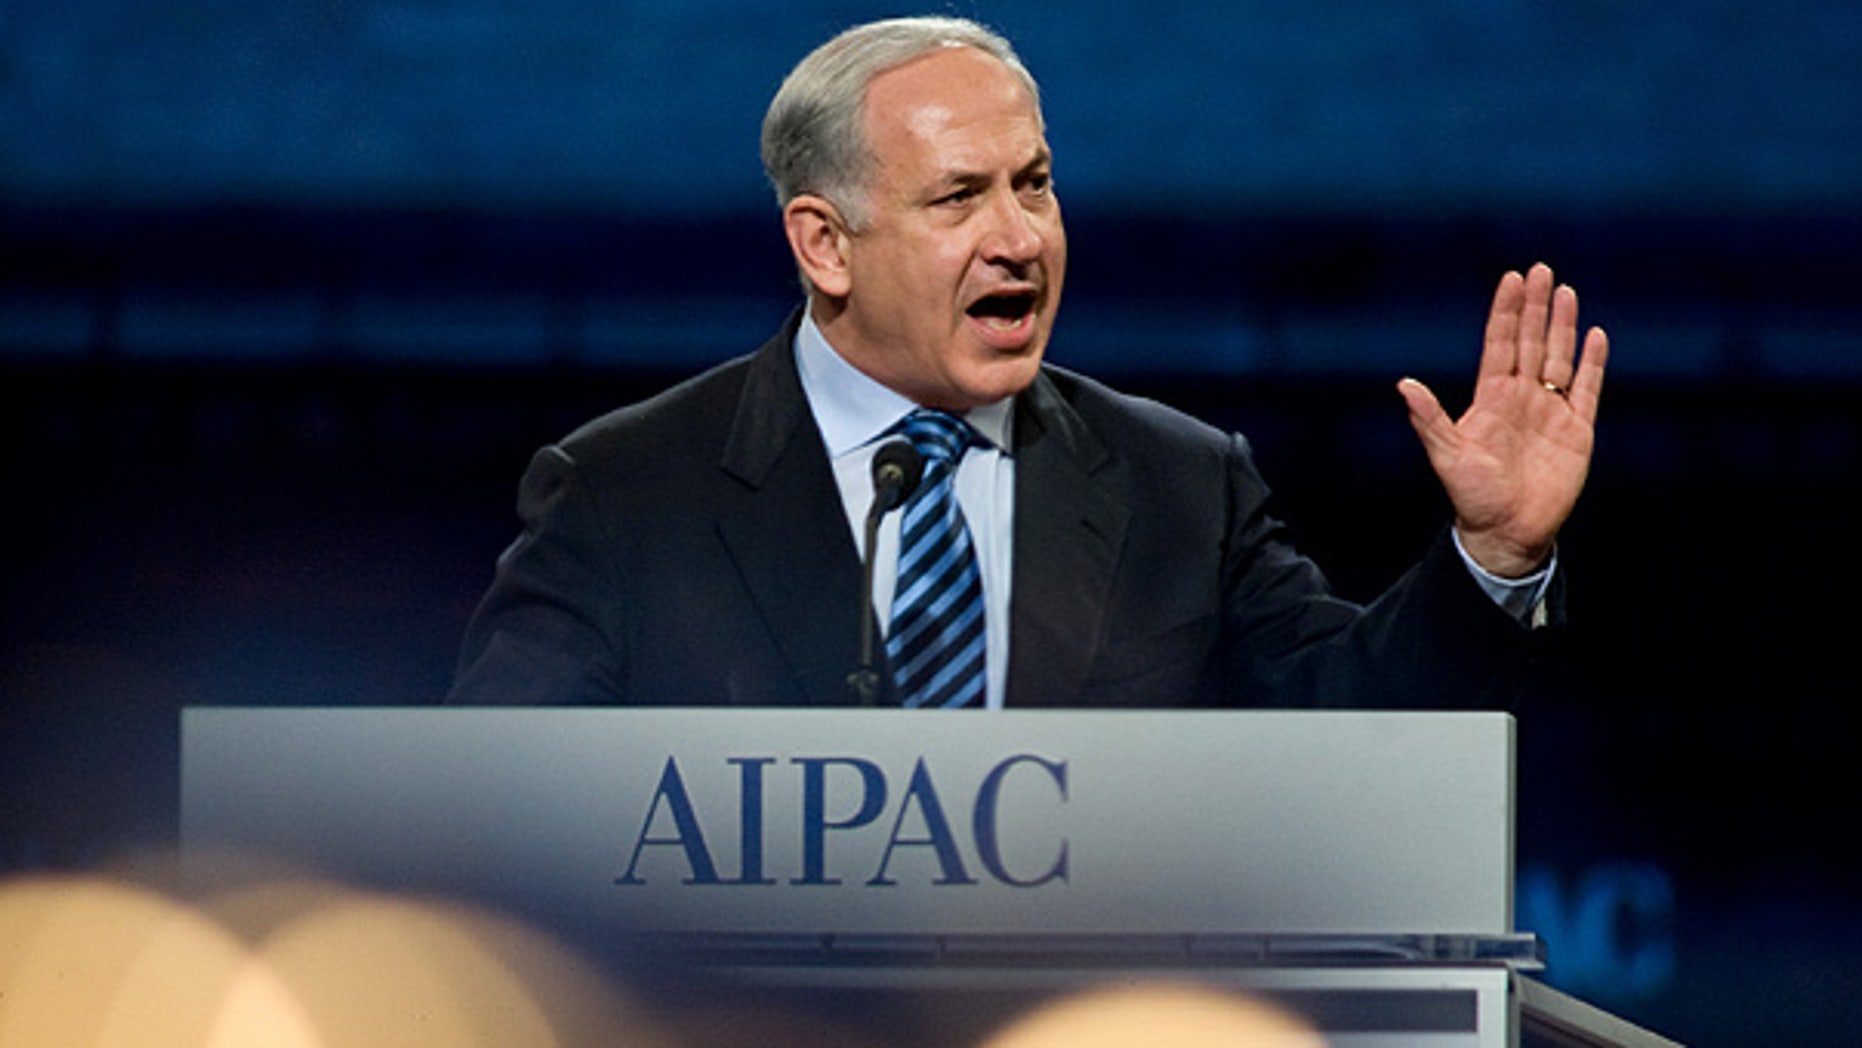 Mar. 22: Israel Prime Minister Benjamin Netanyahu addresses the American Israel Public Affairs Committee Policy Conference dinner in Washington.